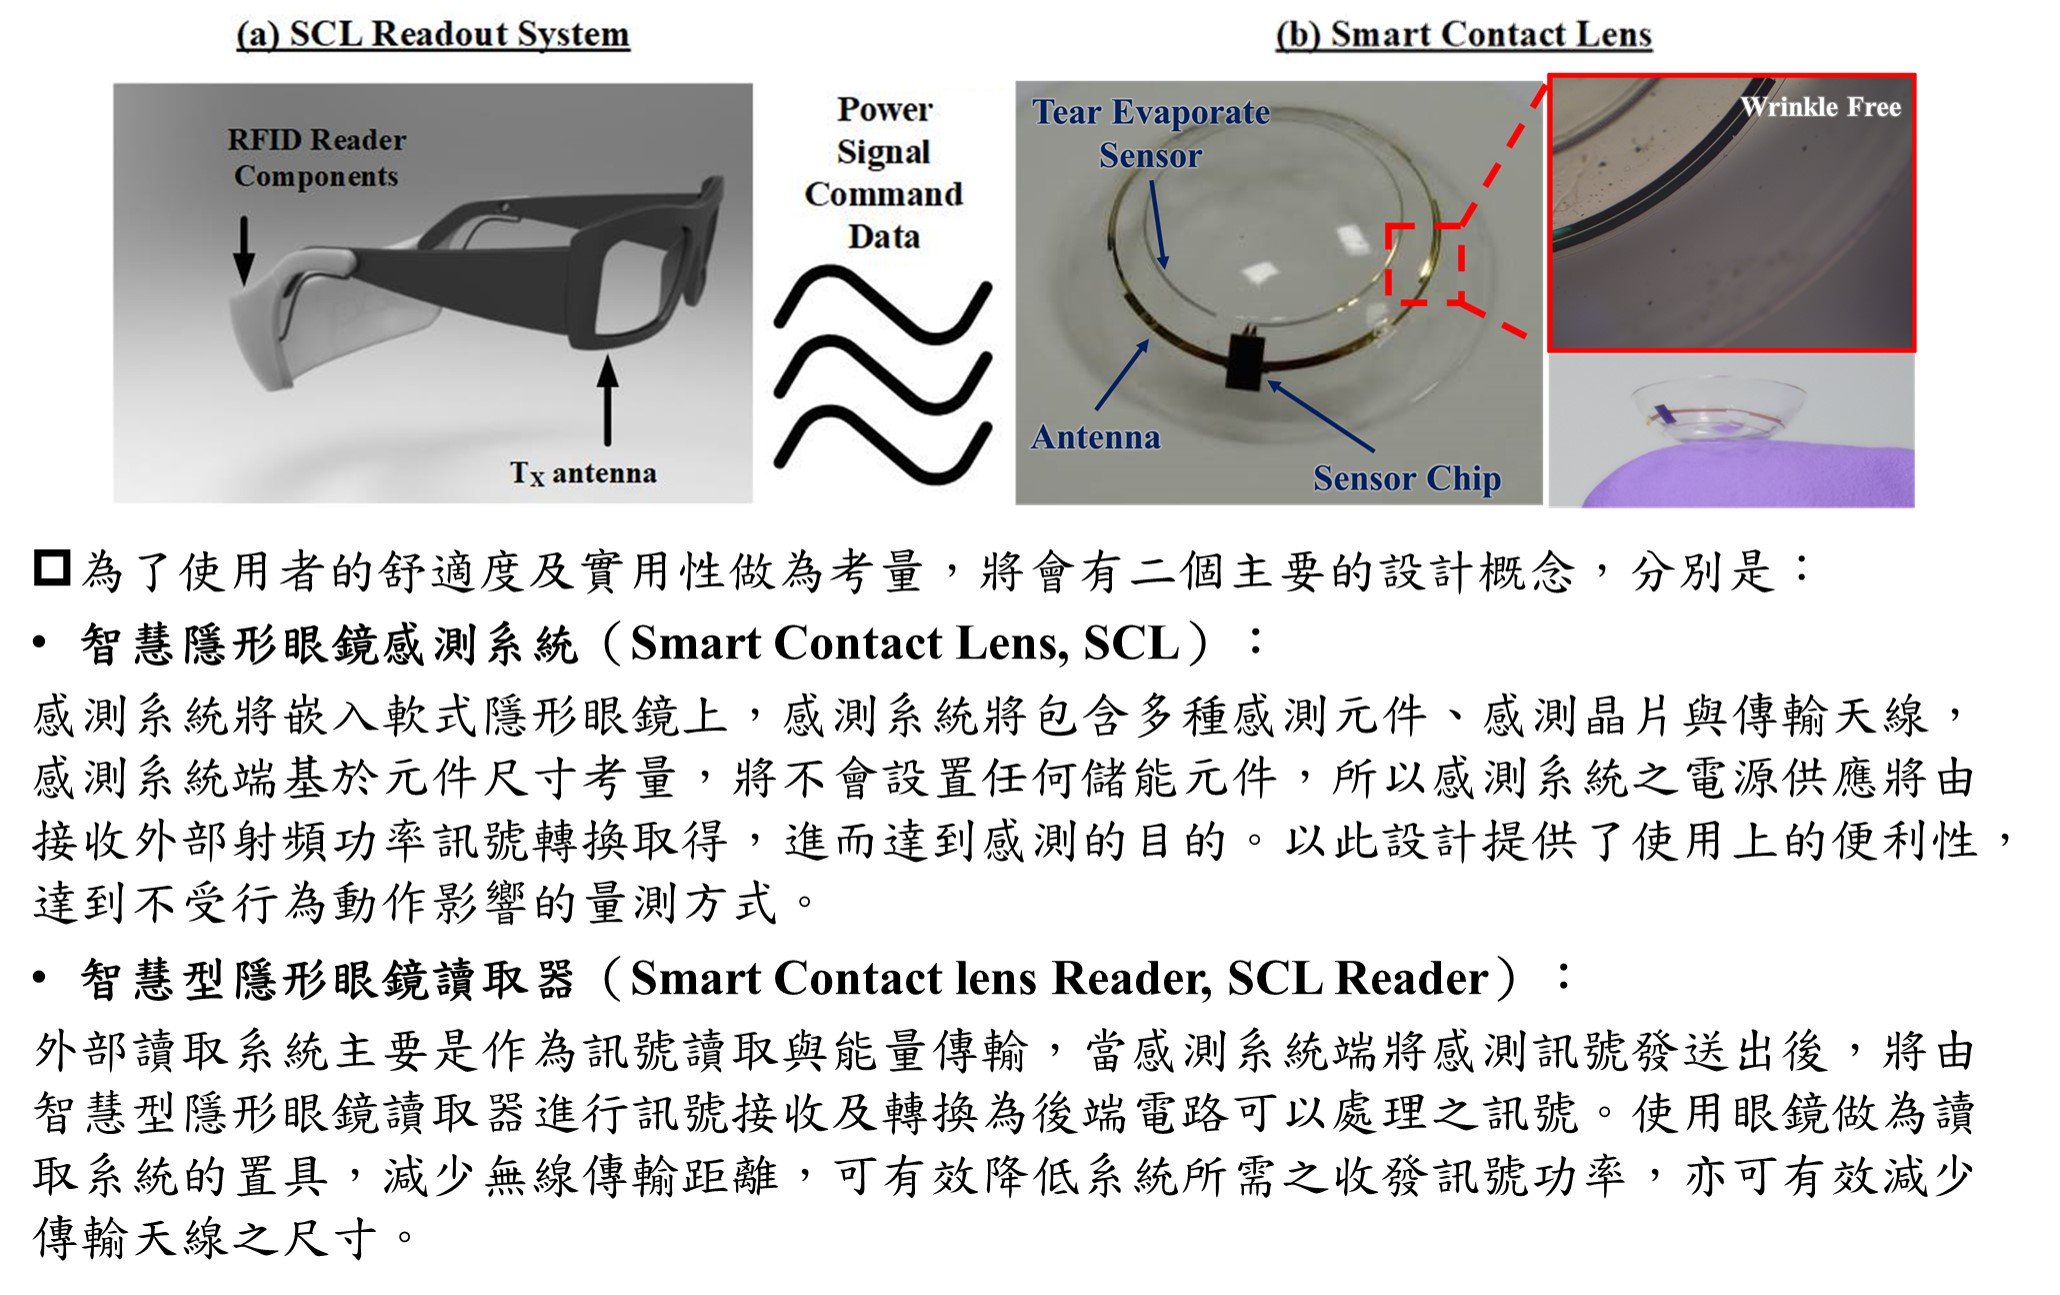 The DevelopmentClinical Research of Smart Contact Lens System for Dry Eye Syndrome Diagnosis